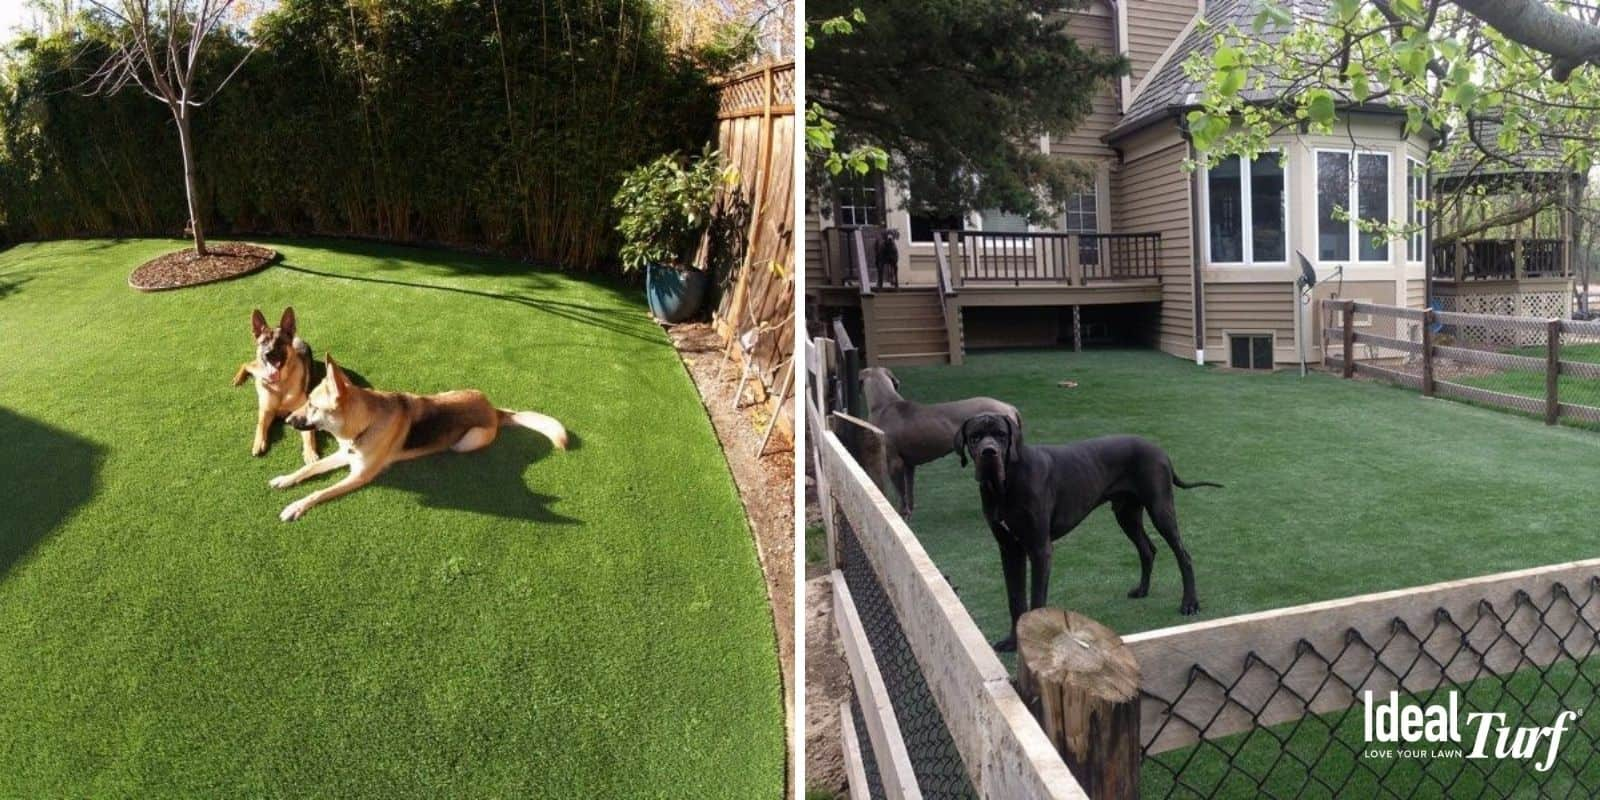 Dogs in two artificial grass dog runs